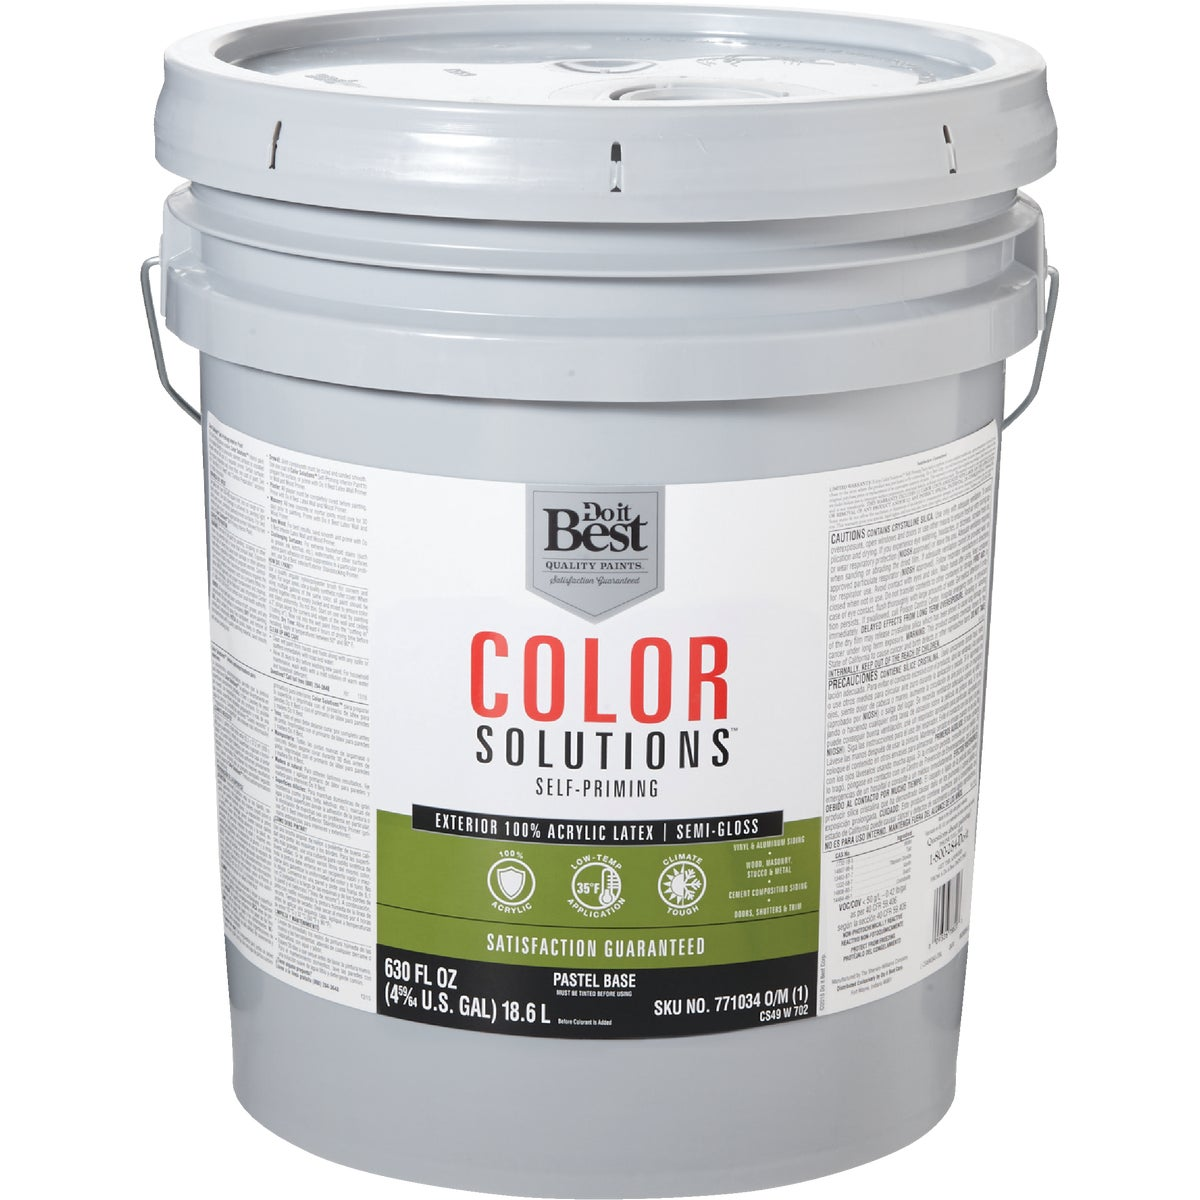 EXT S/G PASTEL BS PAINT - CS49W0702-20 by Do it Best